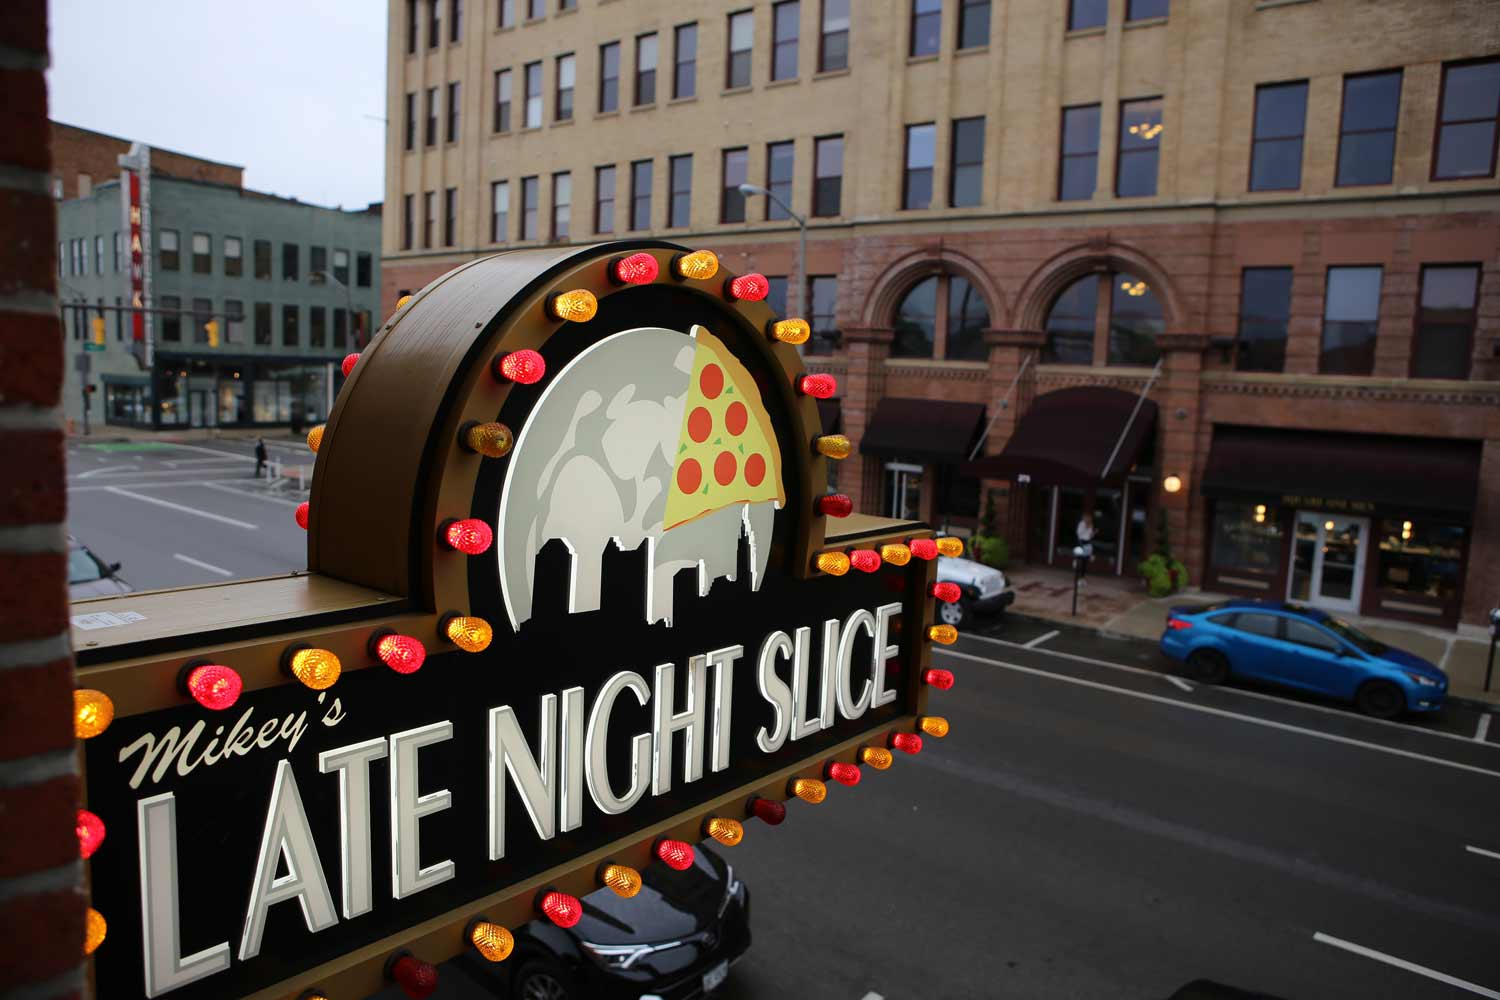 Mikey's Late Night slice graciously serves as our venue for the Shopify meetup Columbus in downtown Columbus Ohio